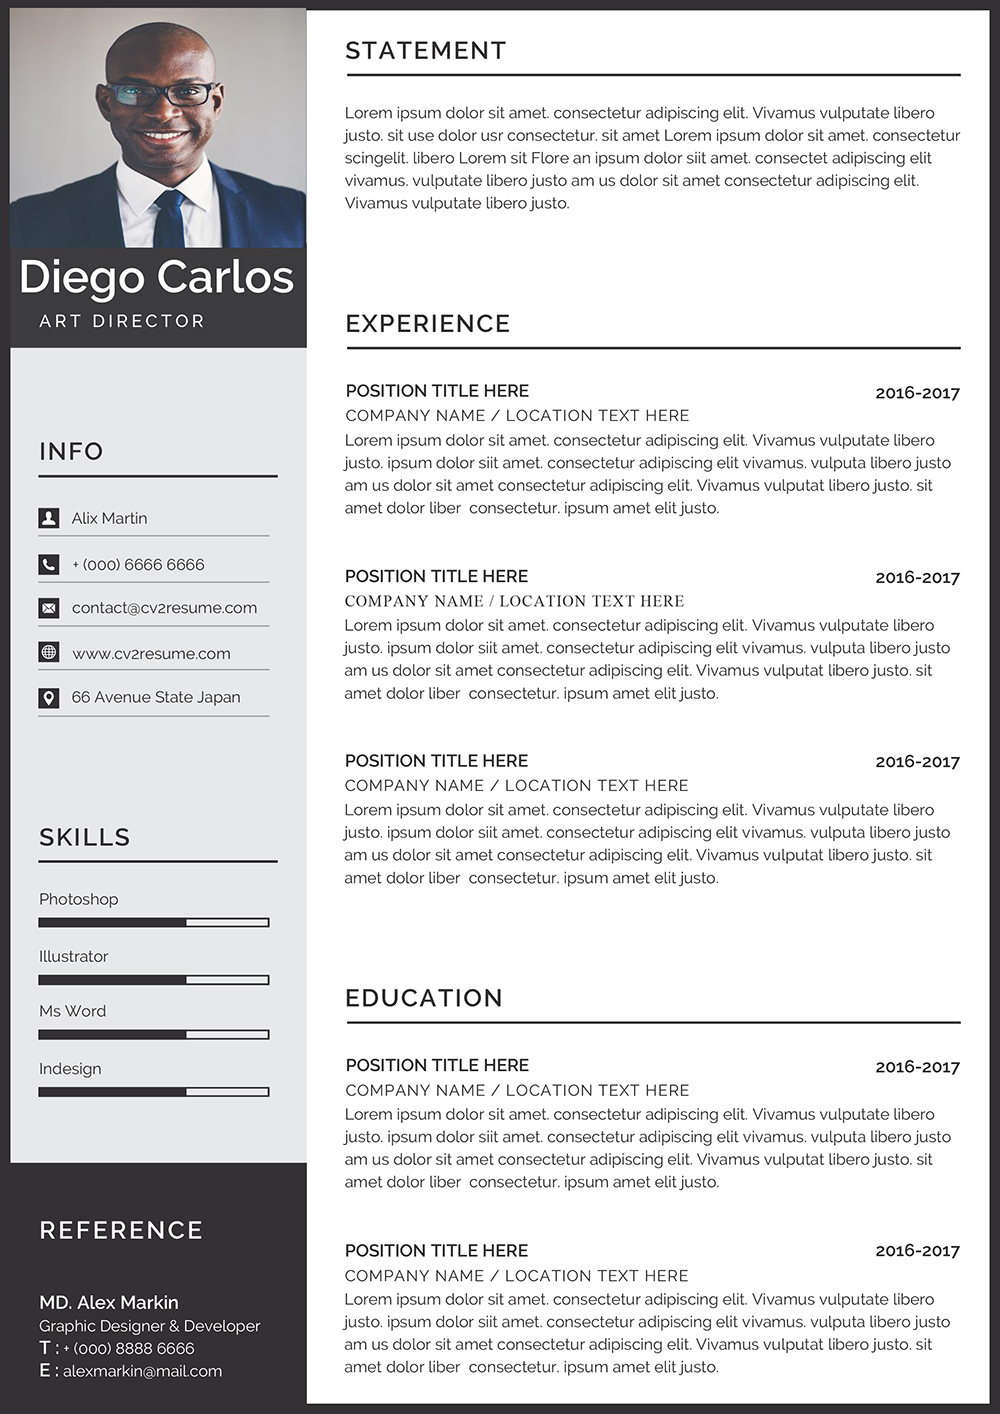 Free minimal cv template in word file format for your job opportunity. Modern Minimalist Resume Template Download Professional Cv In Word